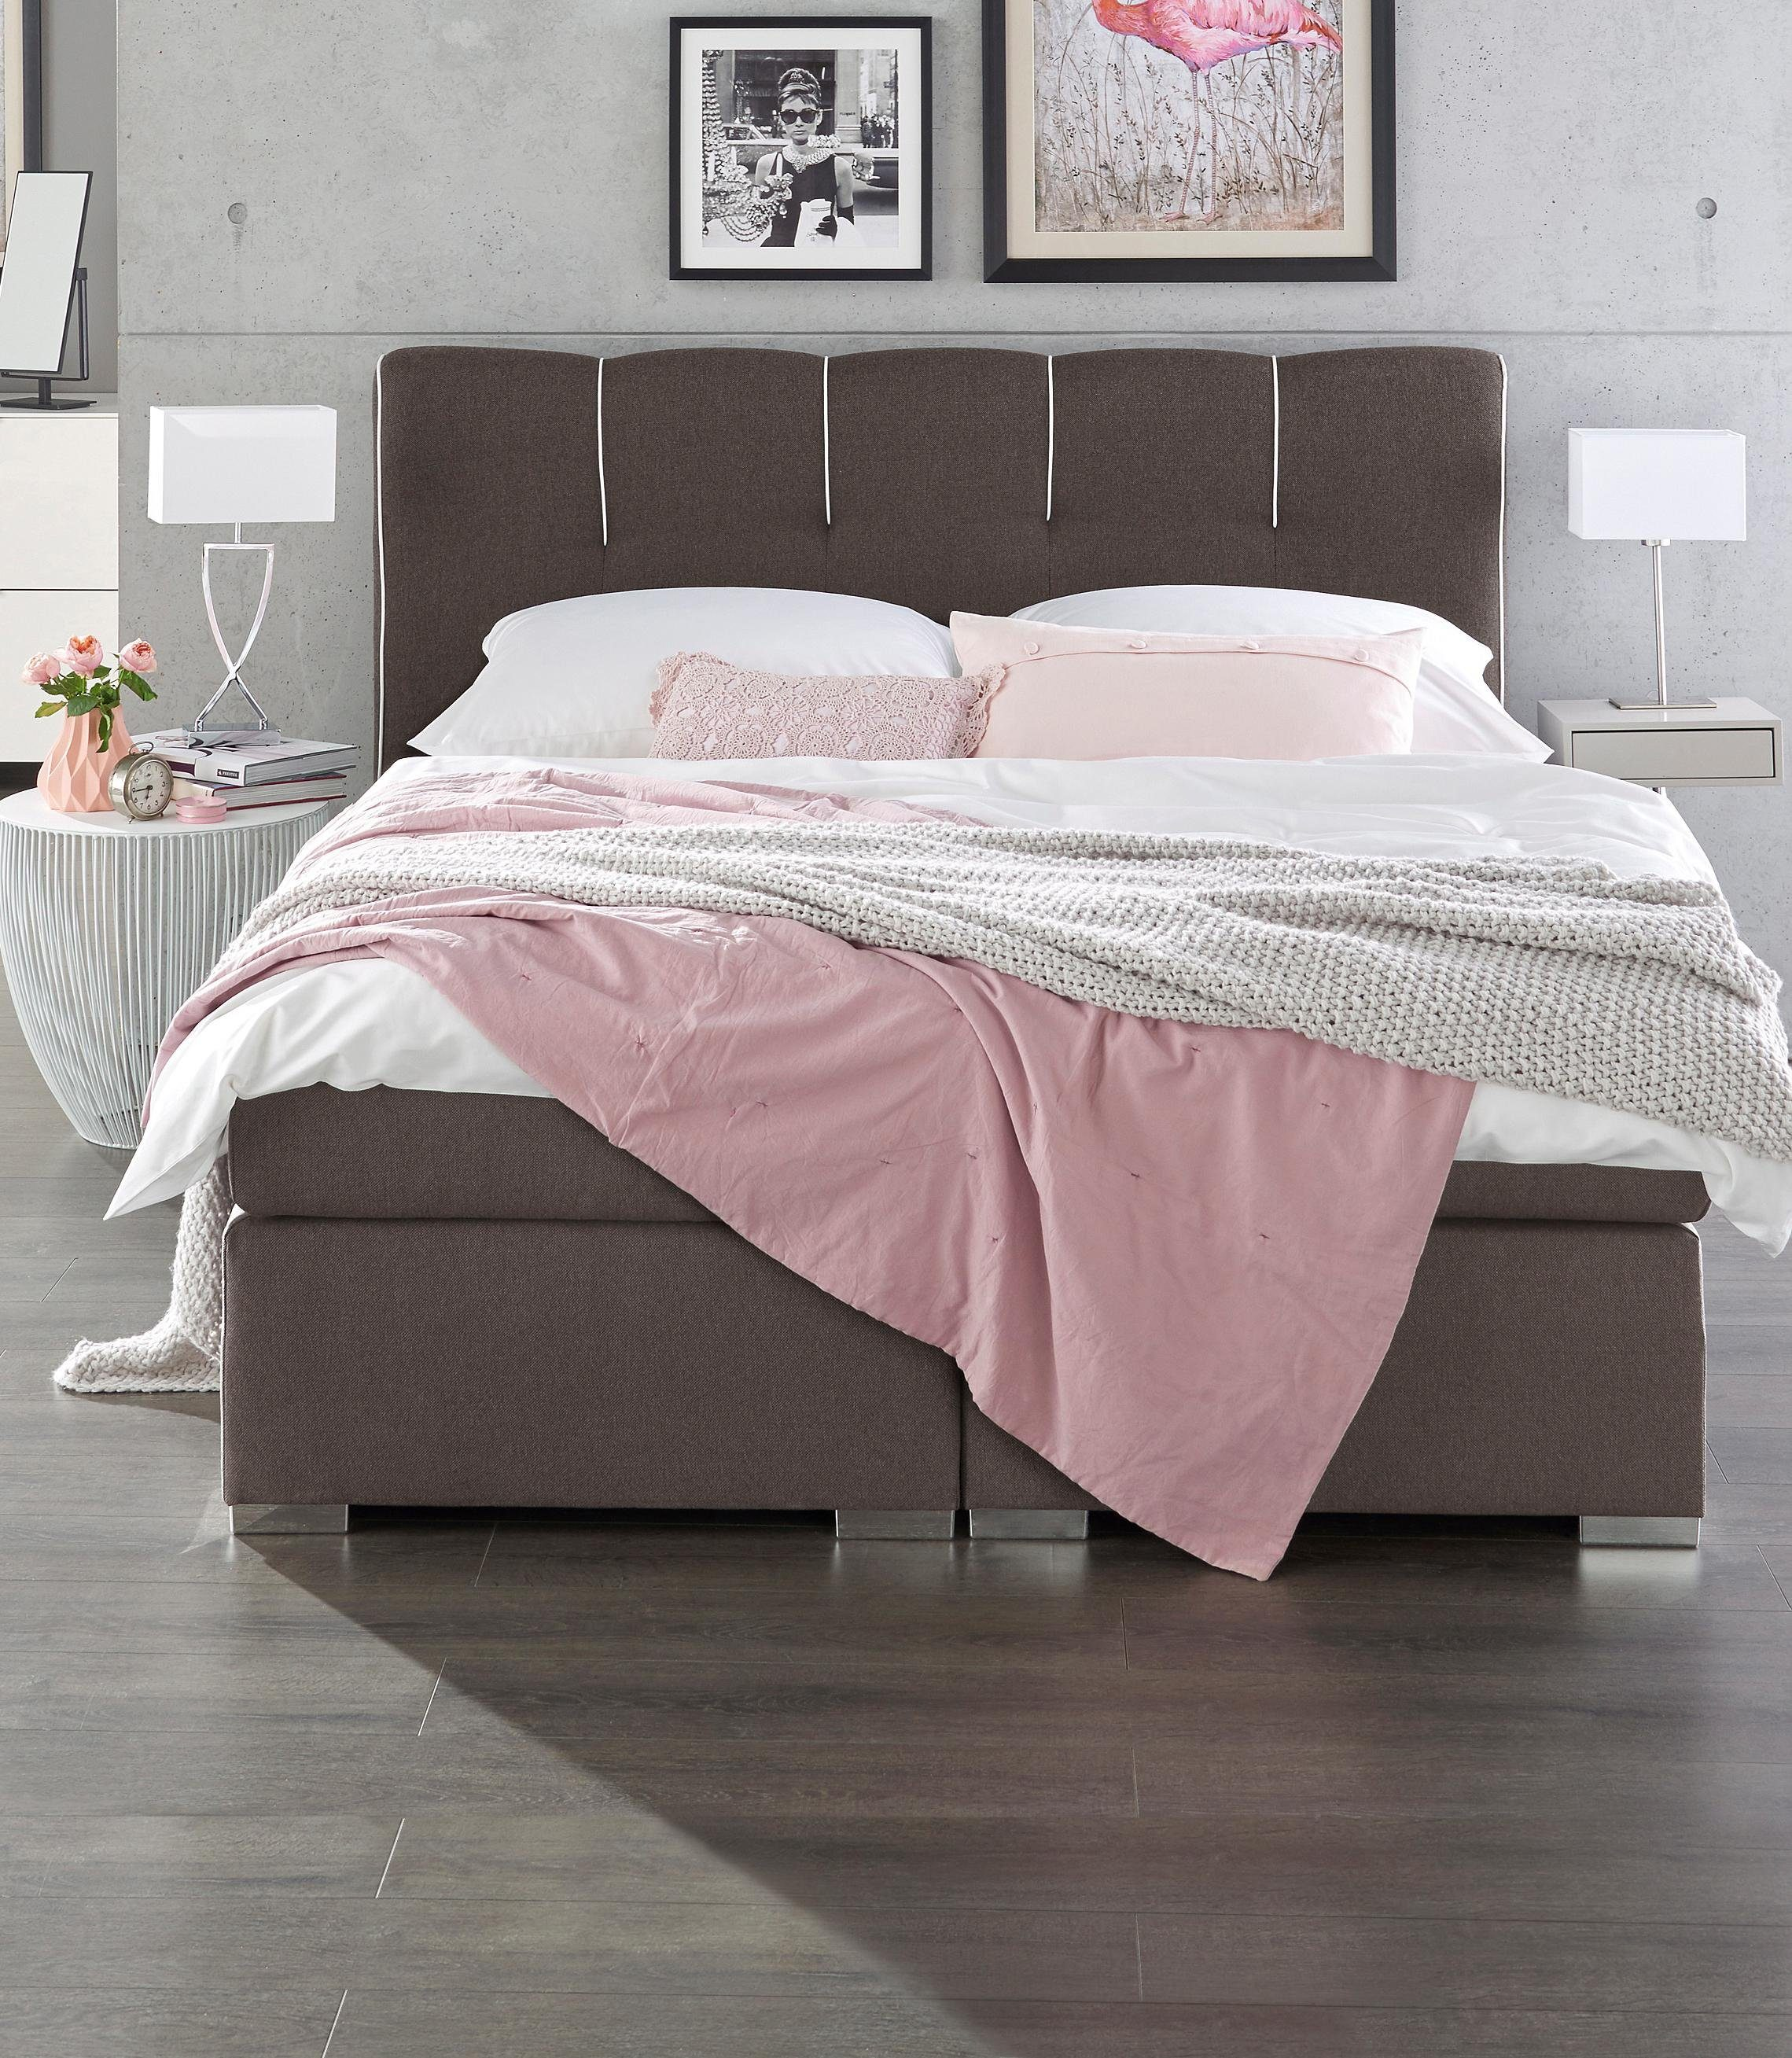 Musterring Schlafzimmer Günstig Kaufen Musterring Set One Memphis Musterring Set One 2019 02 17